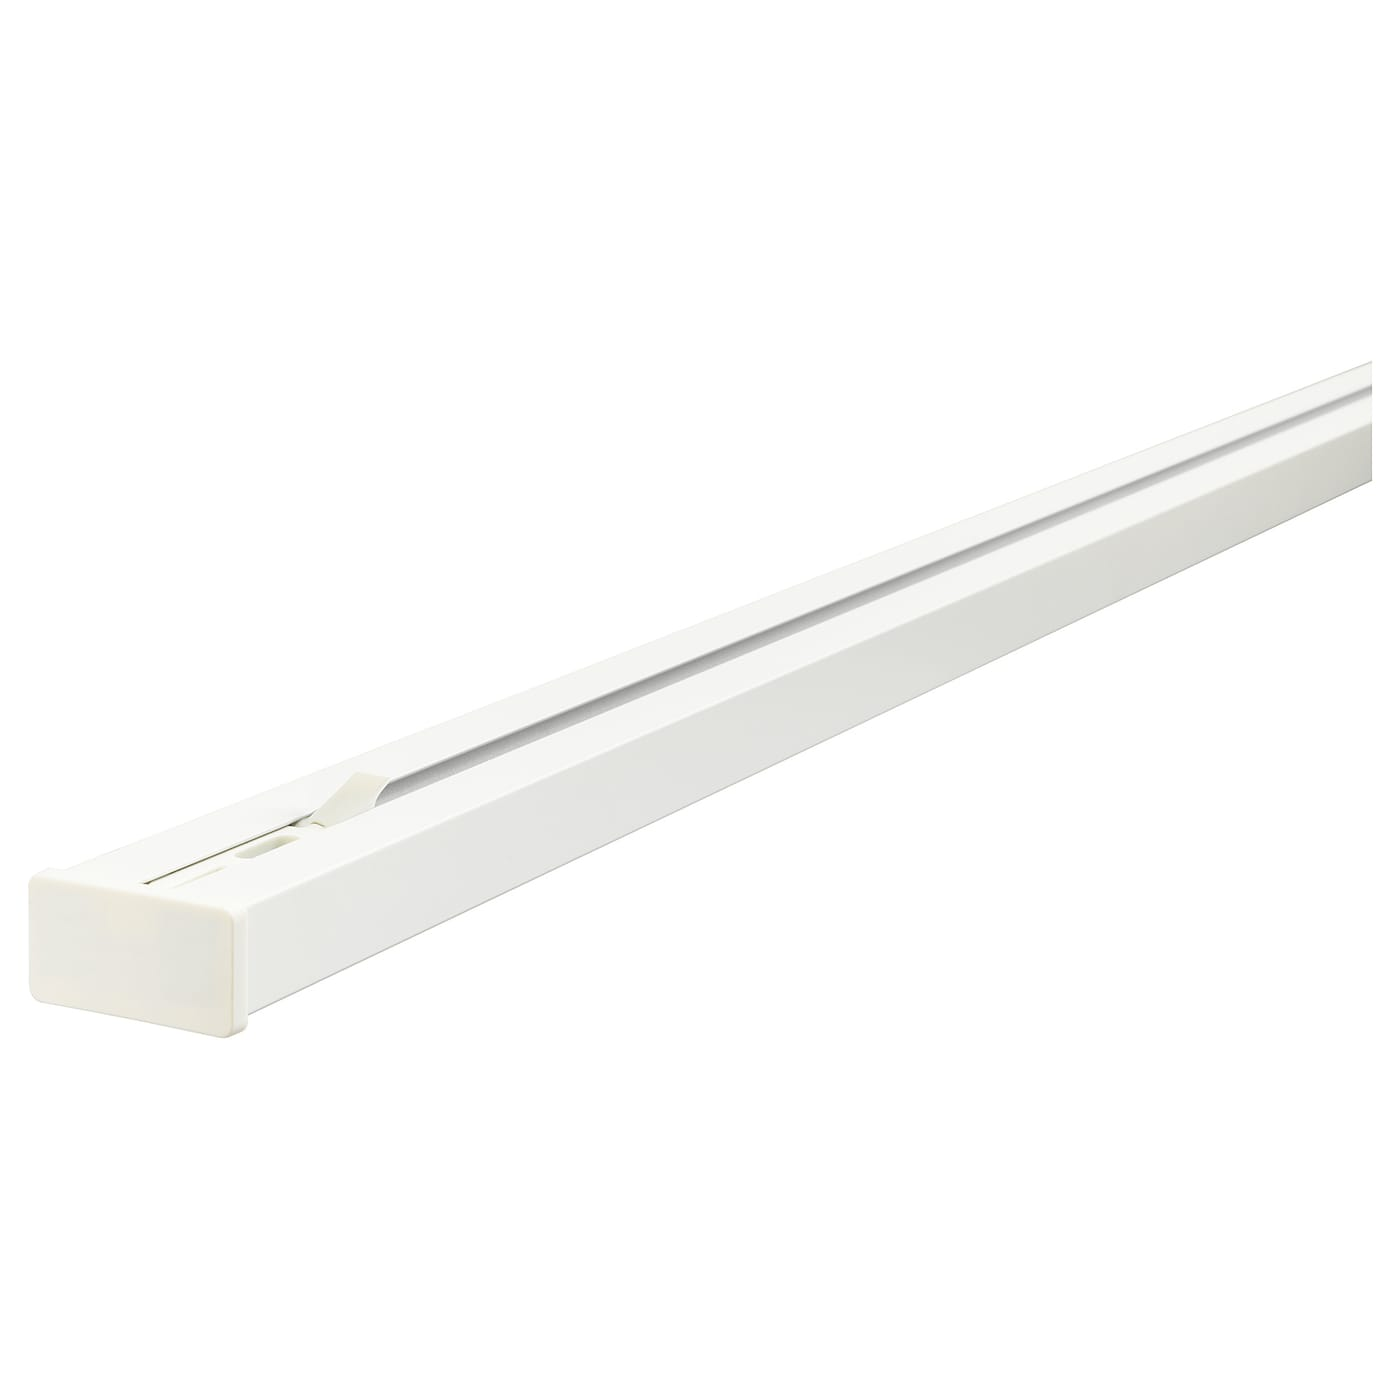 IKEA VIDGA triple track rail The rail can be cut to the desired length with a hacksaw.